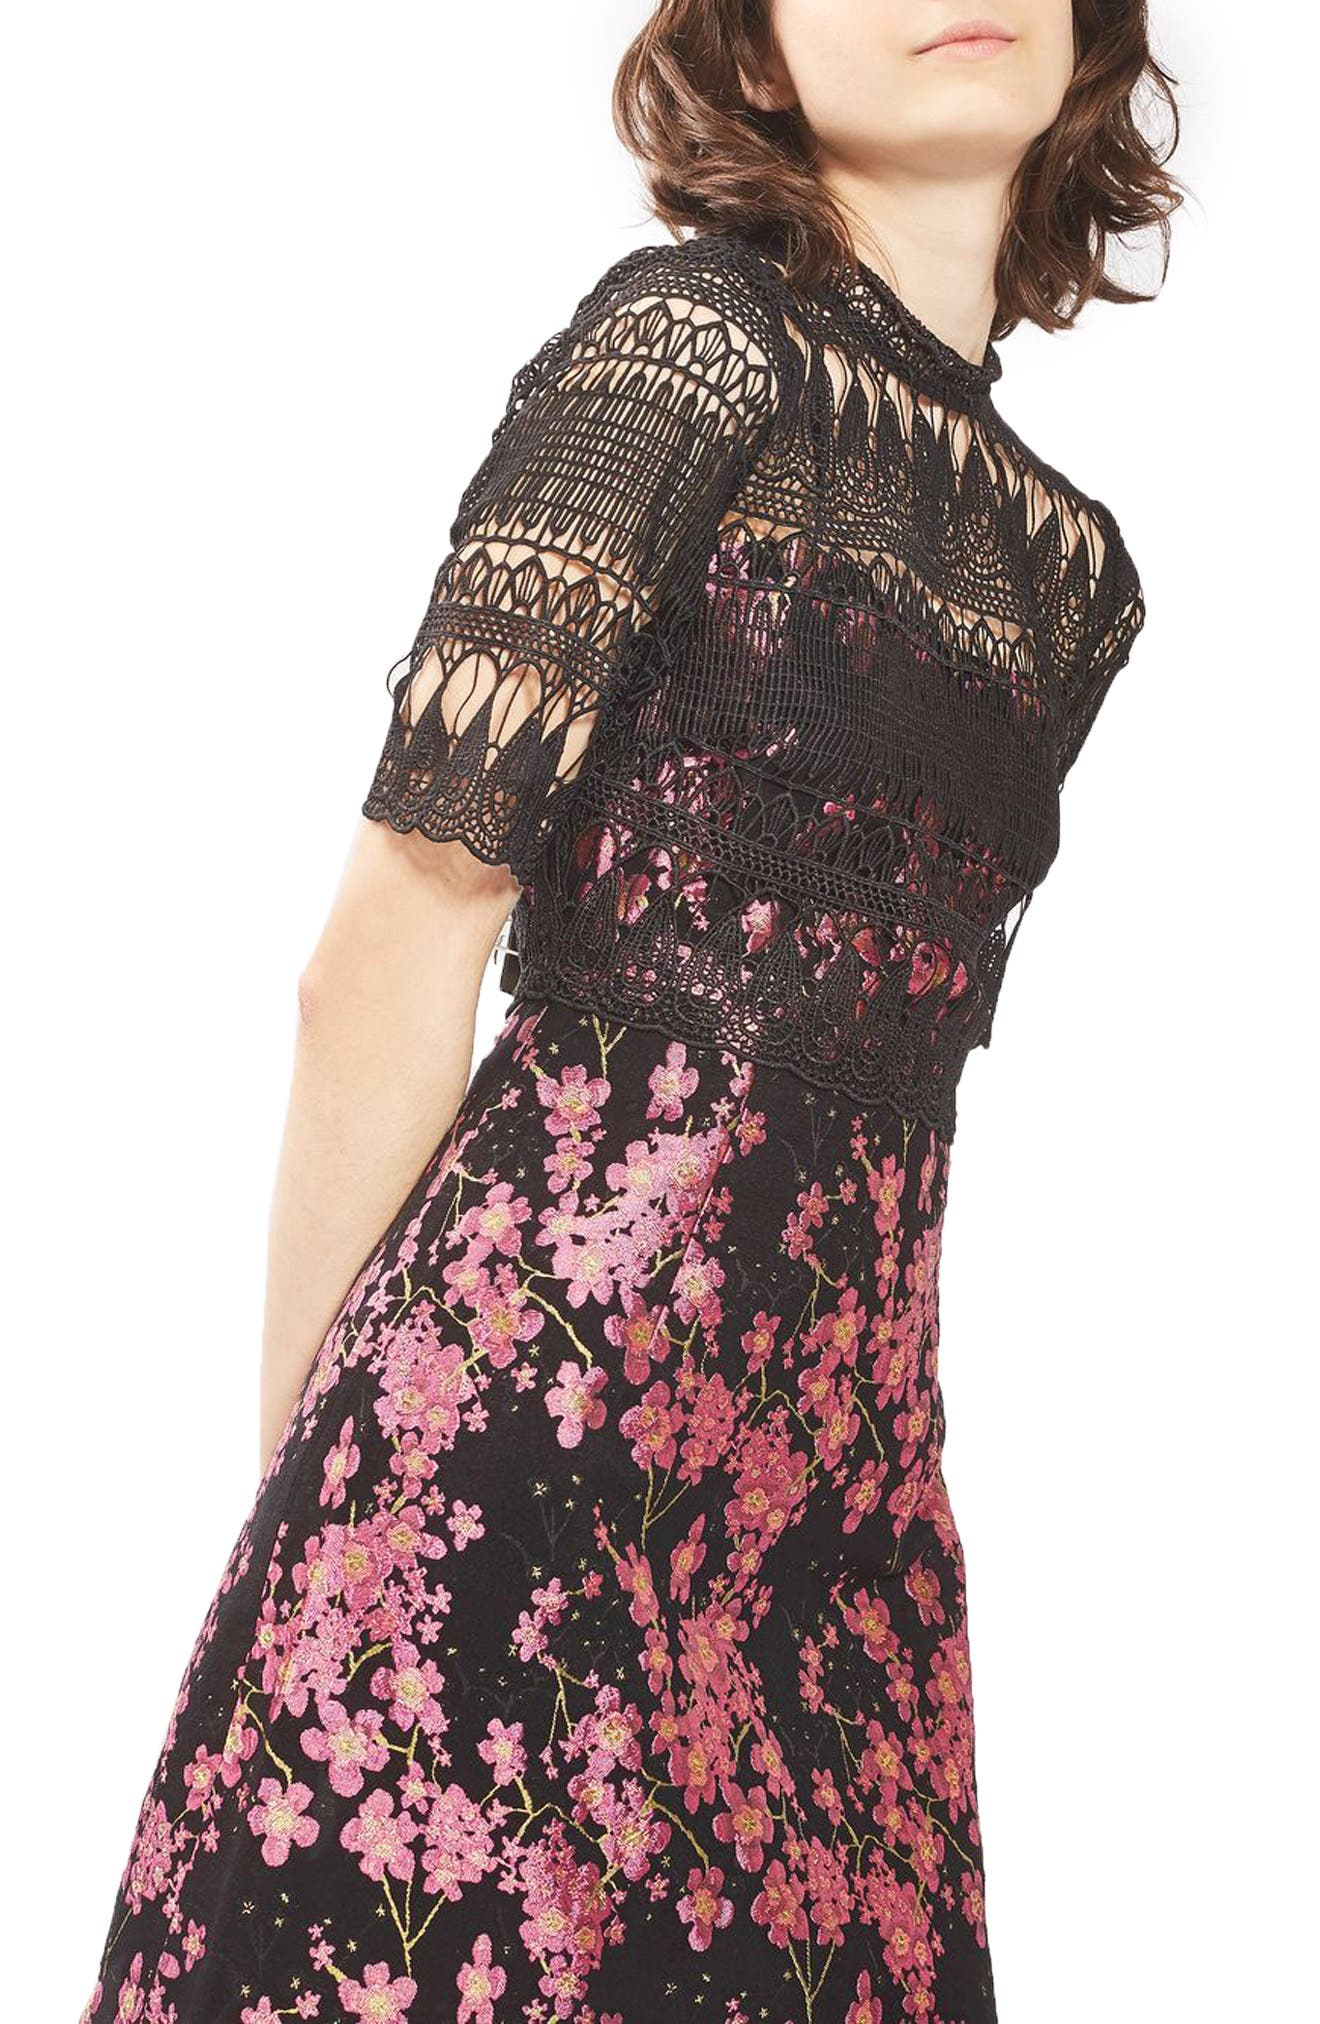 Alternate Image 1 Selected - Topshop Lace & Jacquard Dress